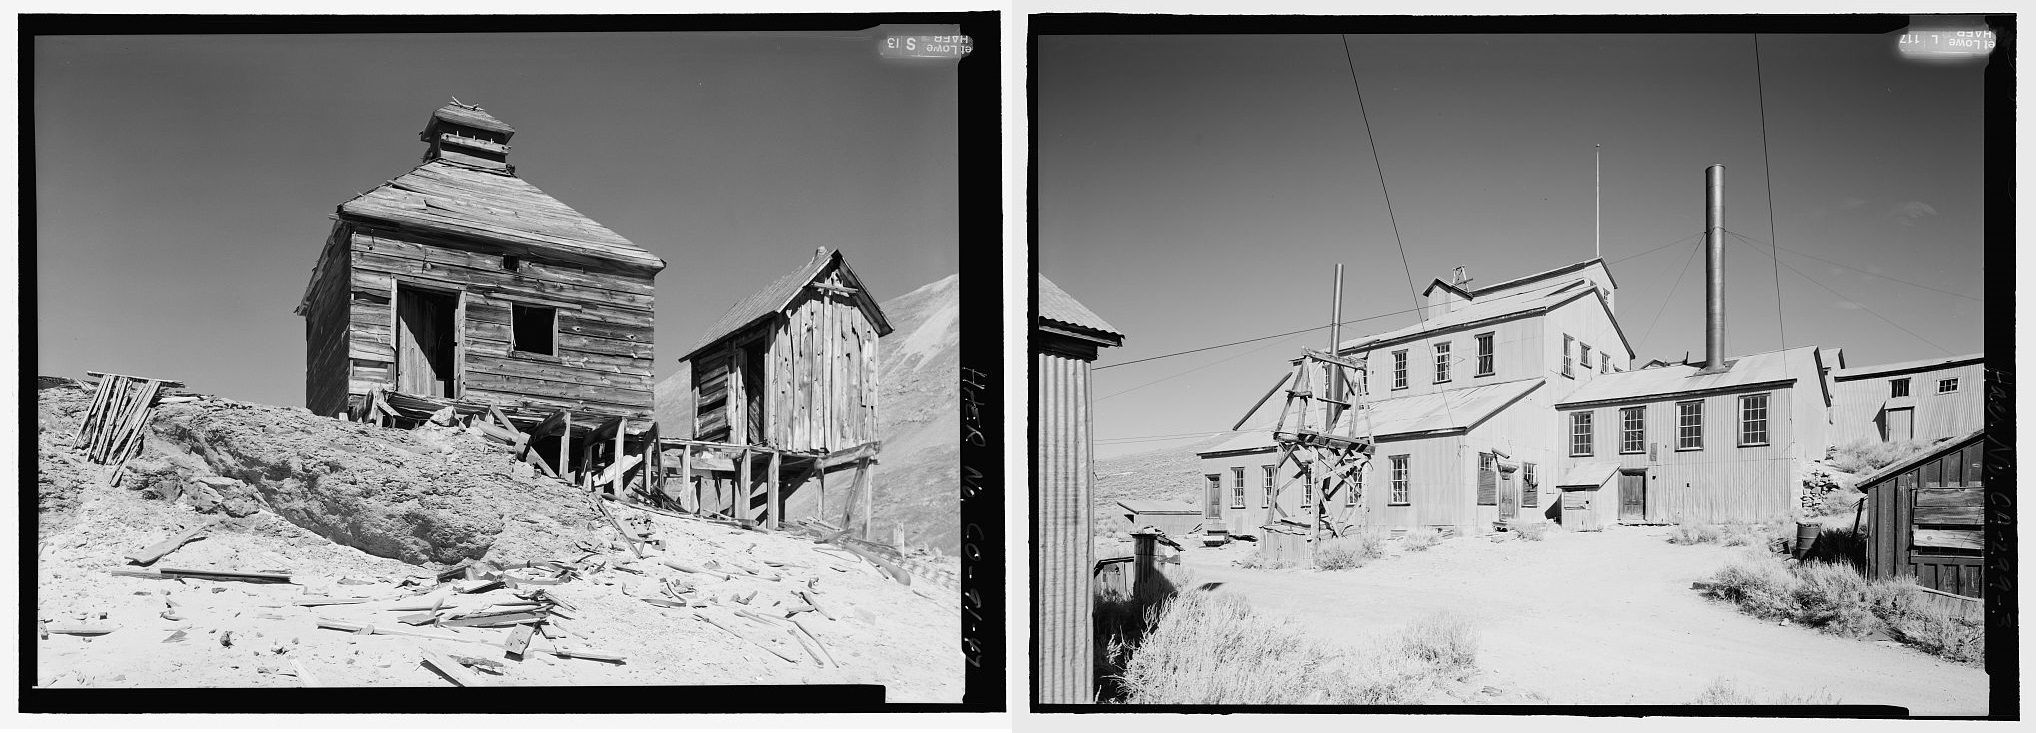 Left: Shenandoah-Dives Mill, San Juan County, CO. From loc.gov Right: Standard Gold Mill, Bodie, CA. From loc.gov